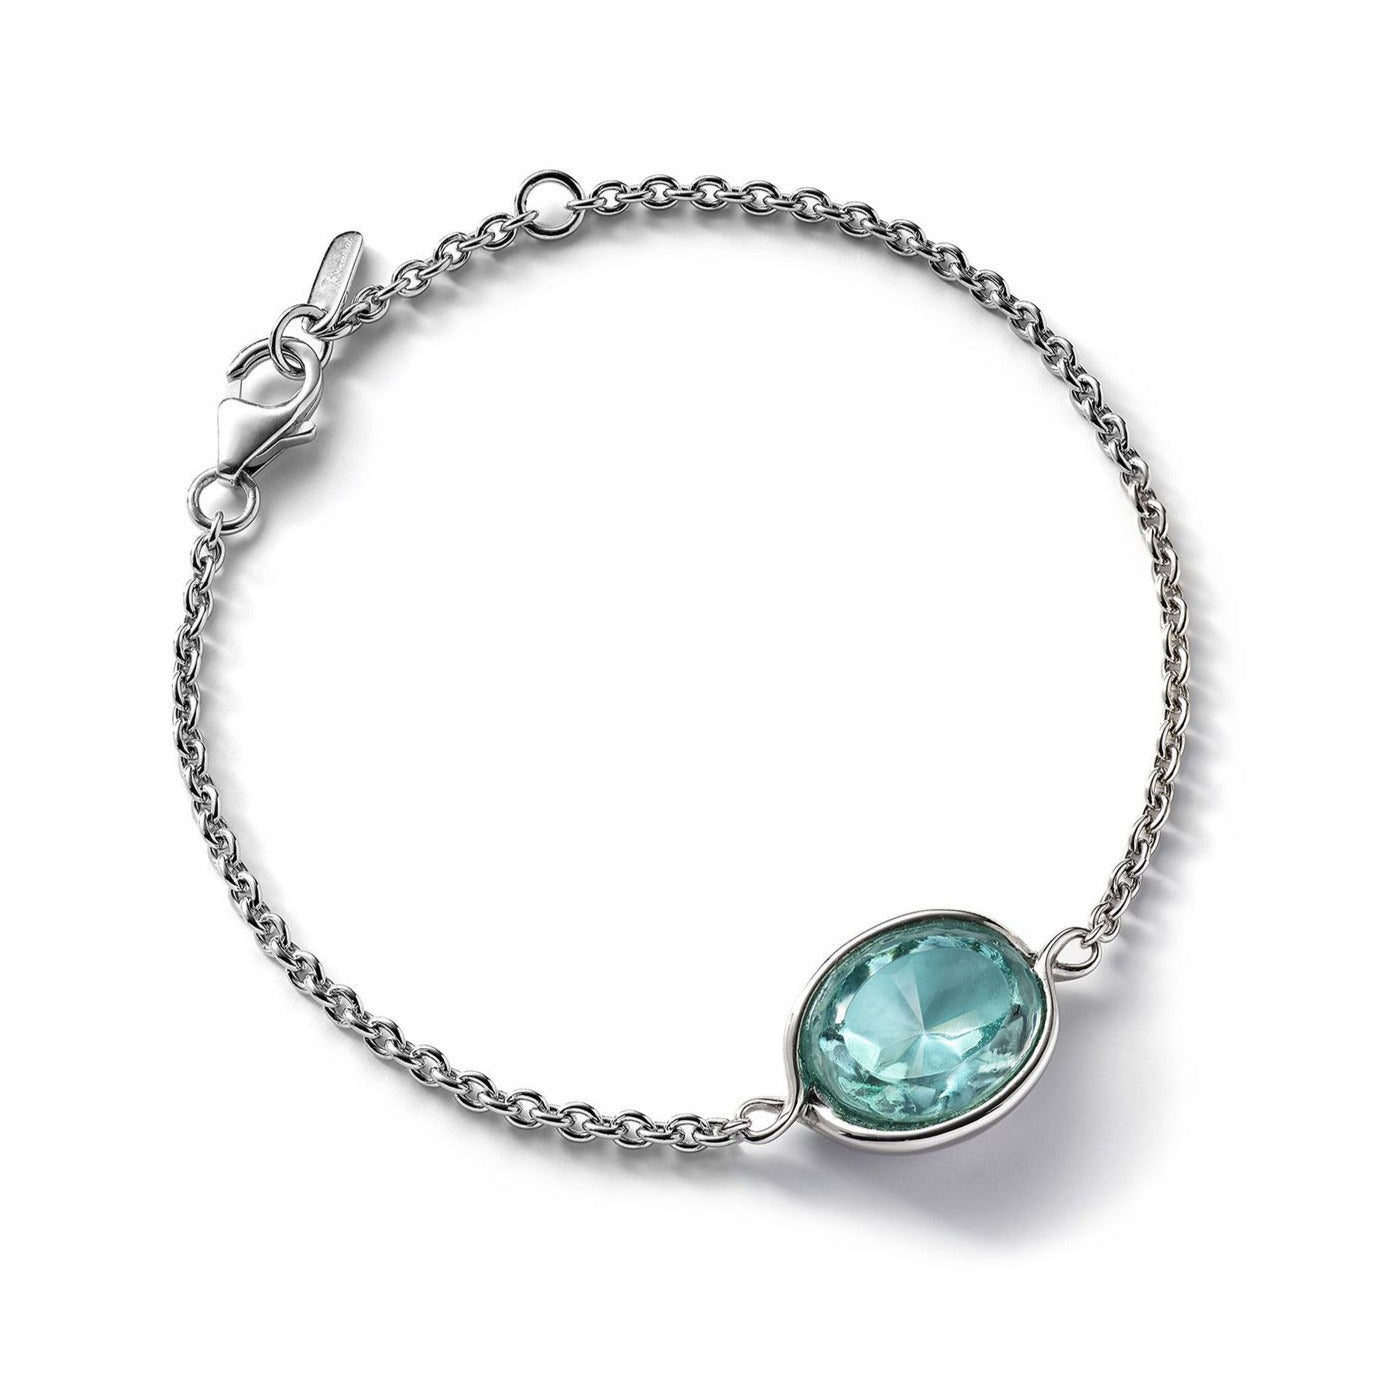 Silver Croise Turquoise Crystal Bracelet - Andrew Scott